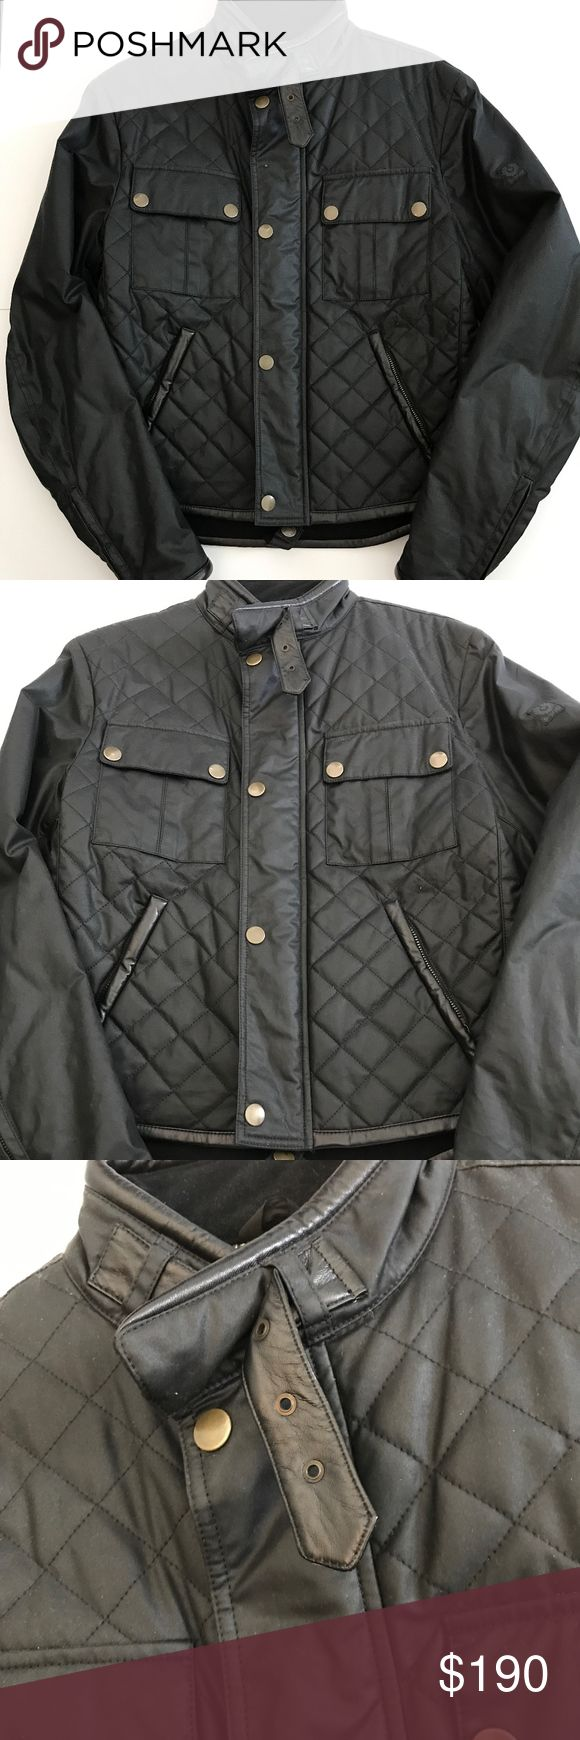 BELSTAFF *Gold Label*  Men's Waxed Cotton Moto BELSTAFF - Gold Label - Moto Jacket Black, Waxed Cotton Moto Jacket, Double Pockets, Fabulous Lining.  Made in Italy. Size Medium.  This would be a great Christmas gift.  Worn ONCE! Near perfect condition. Original Retail $695 Belstaff Jackets & Coats